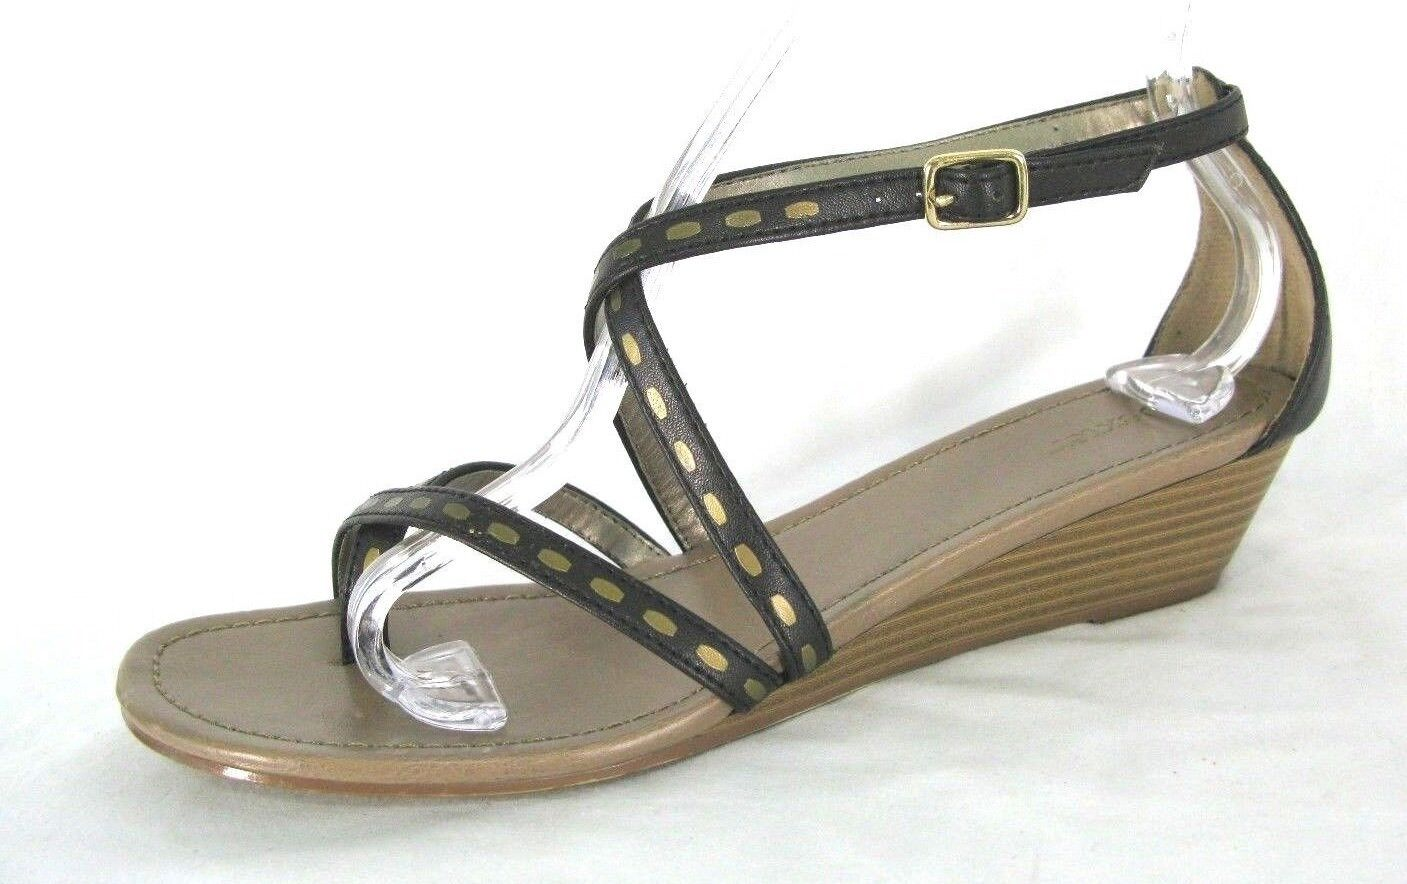 Dexter Sandals Shoes  Sz 9M Brown& Gold  Shoes Strappy Ankle Wedge Heels 9 M 203bd6